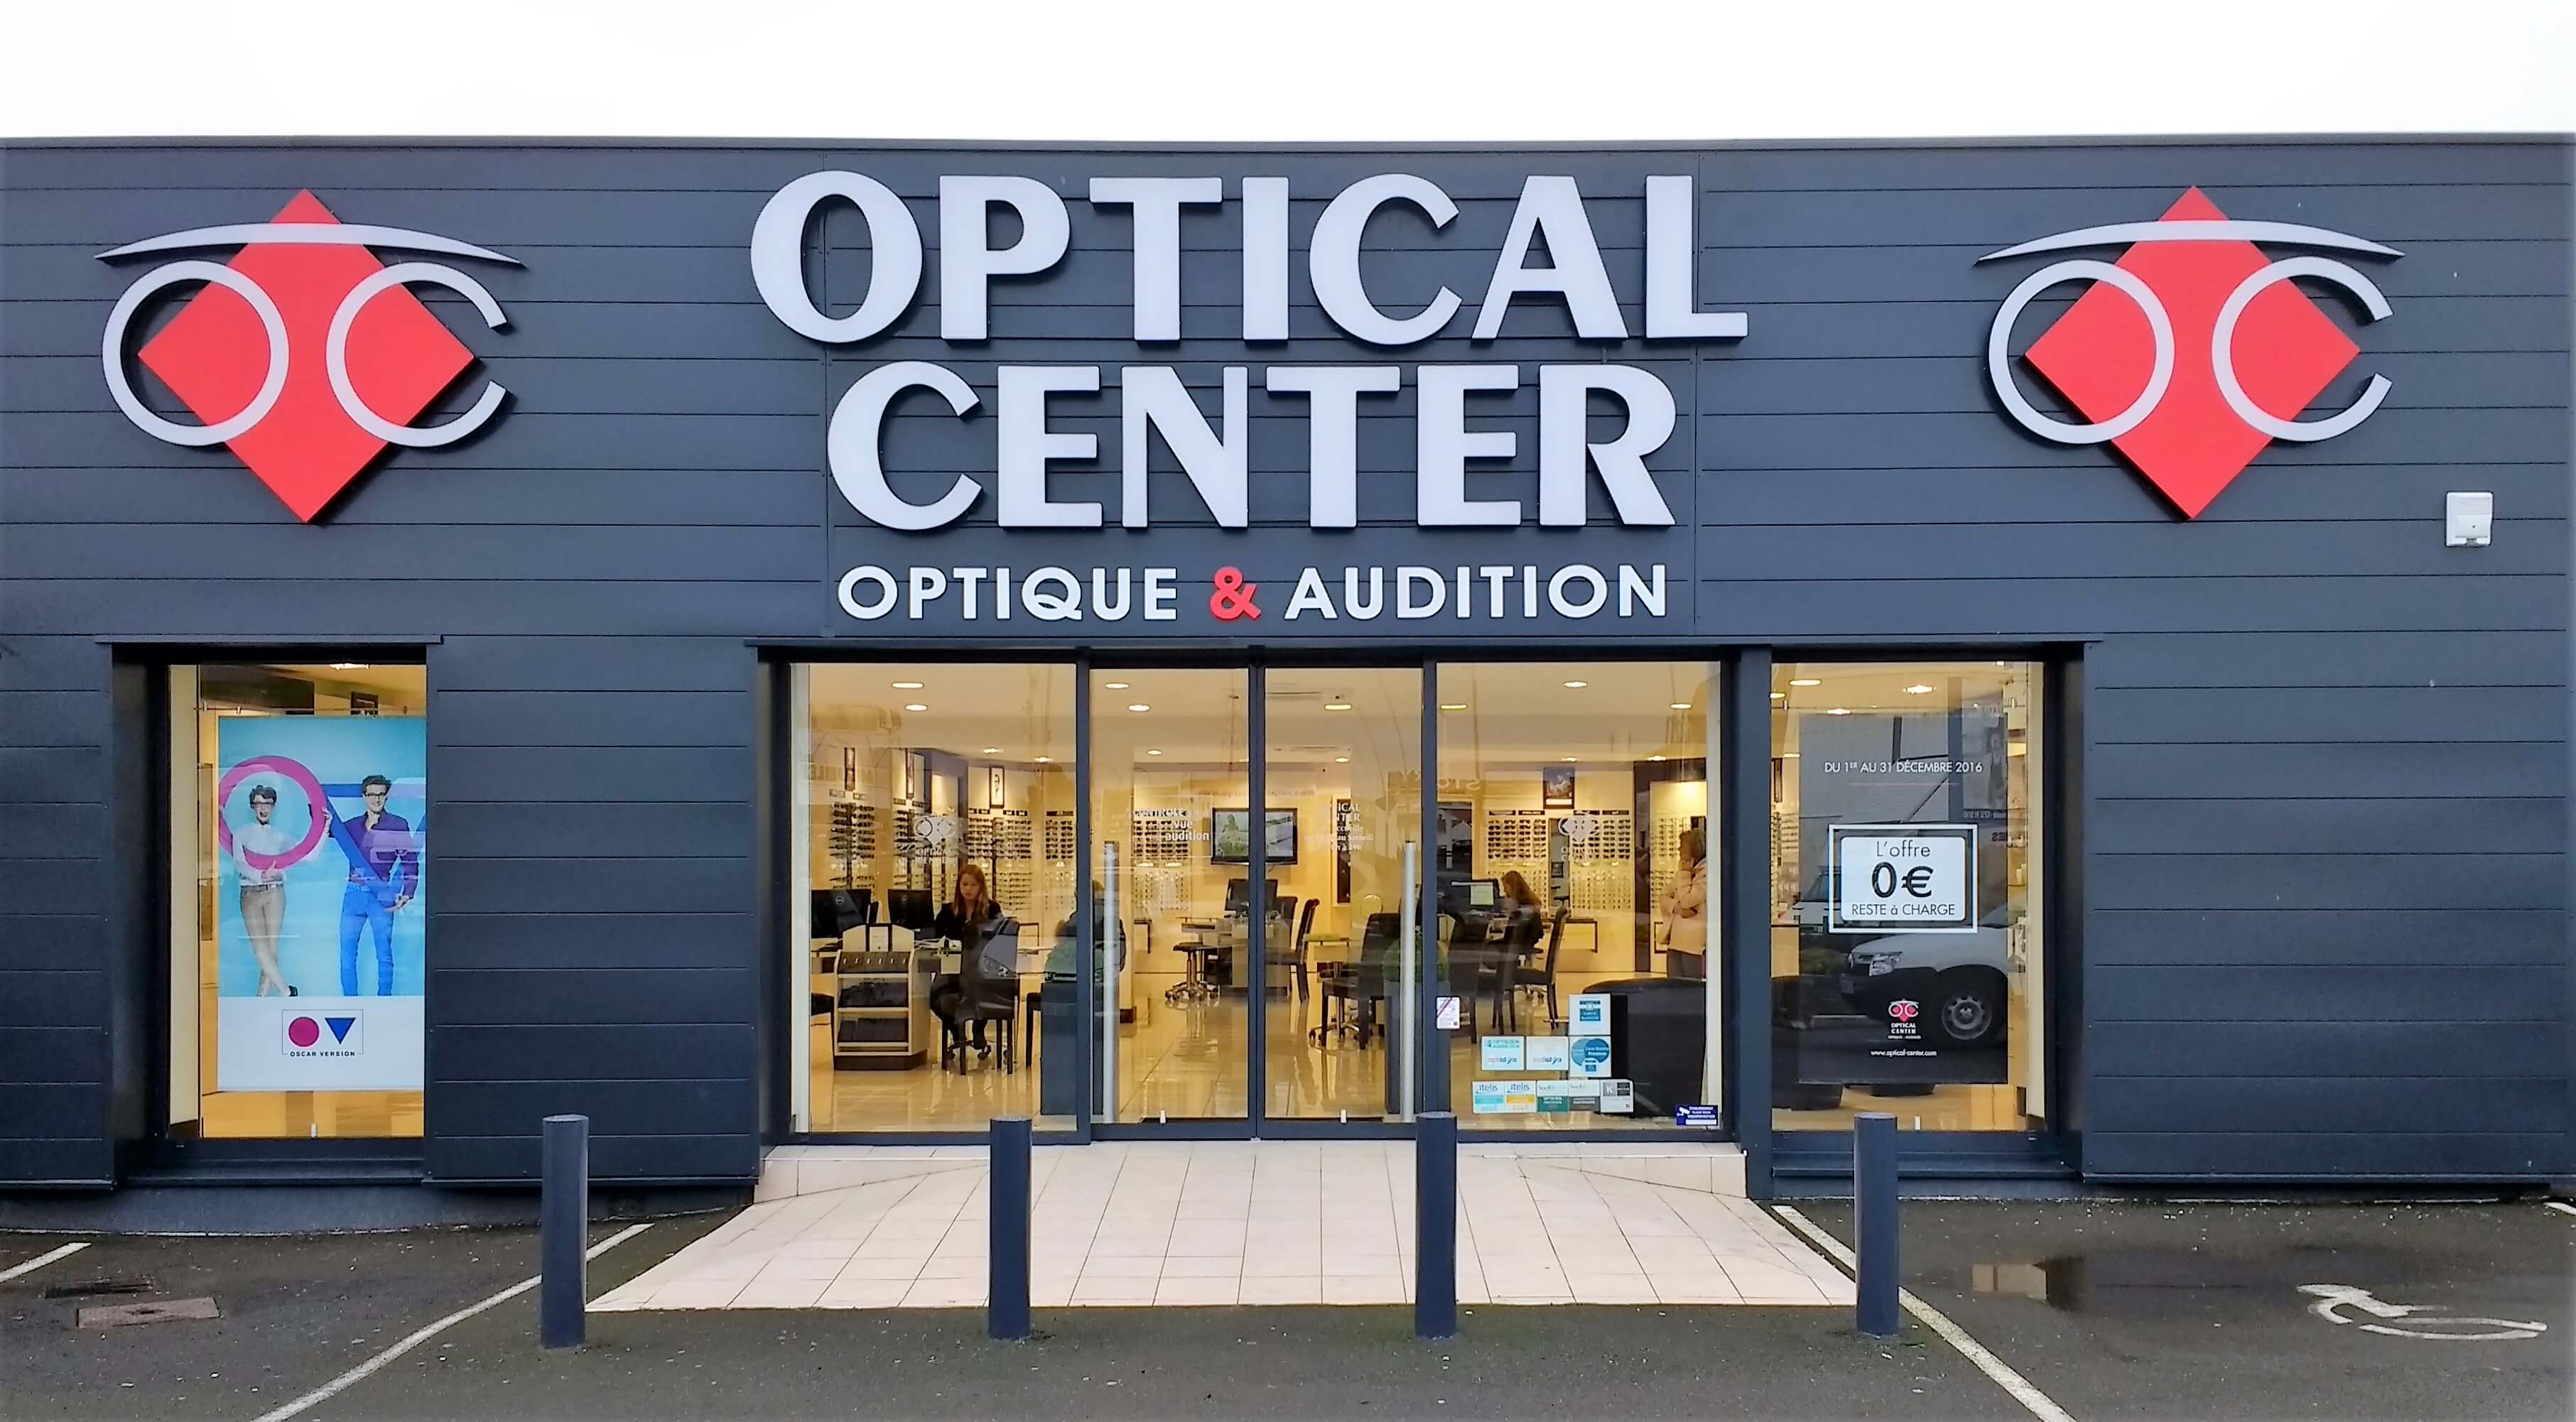 OPTICAL CENTER LCO ens boitier led dec16 IMG_20161222_154232725_HDR portfolio